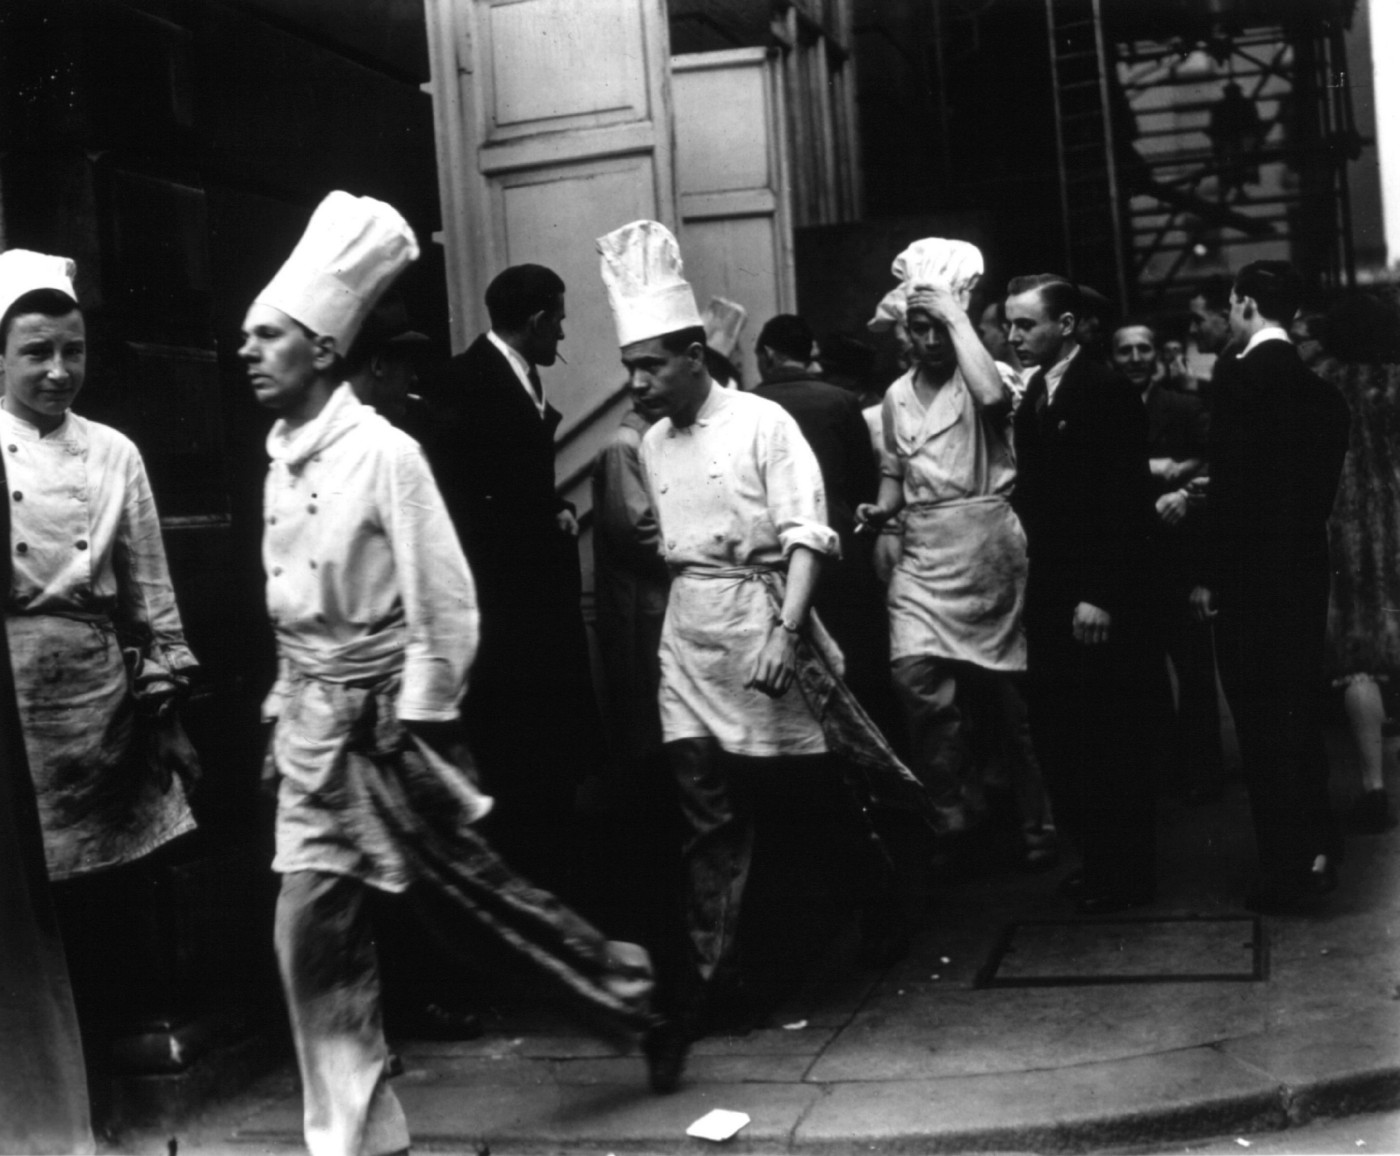 Chefs walk out of the Ritz hotel in London to hear an address by Arthur Lewis MP after which they went on strike.